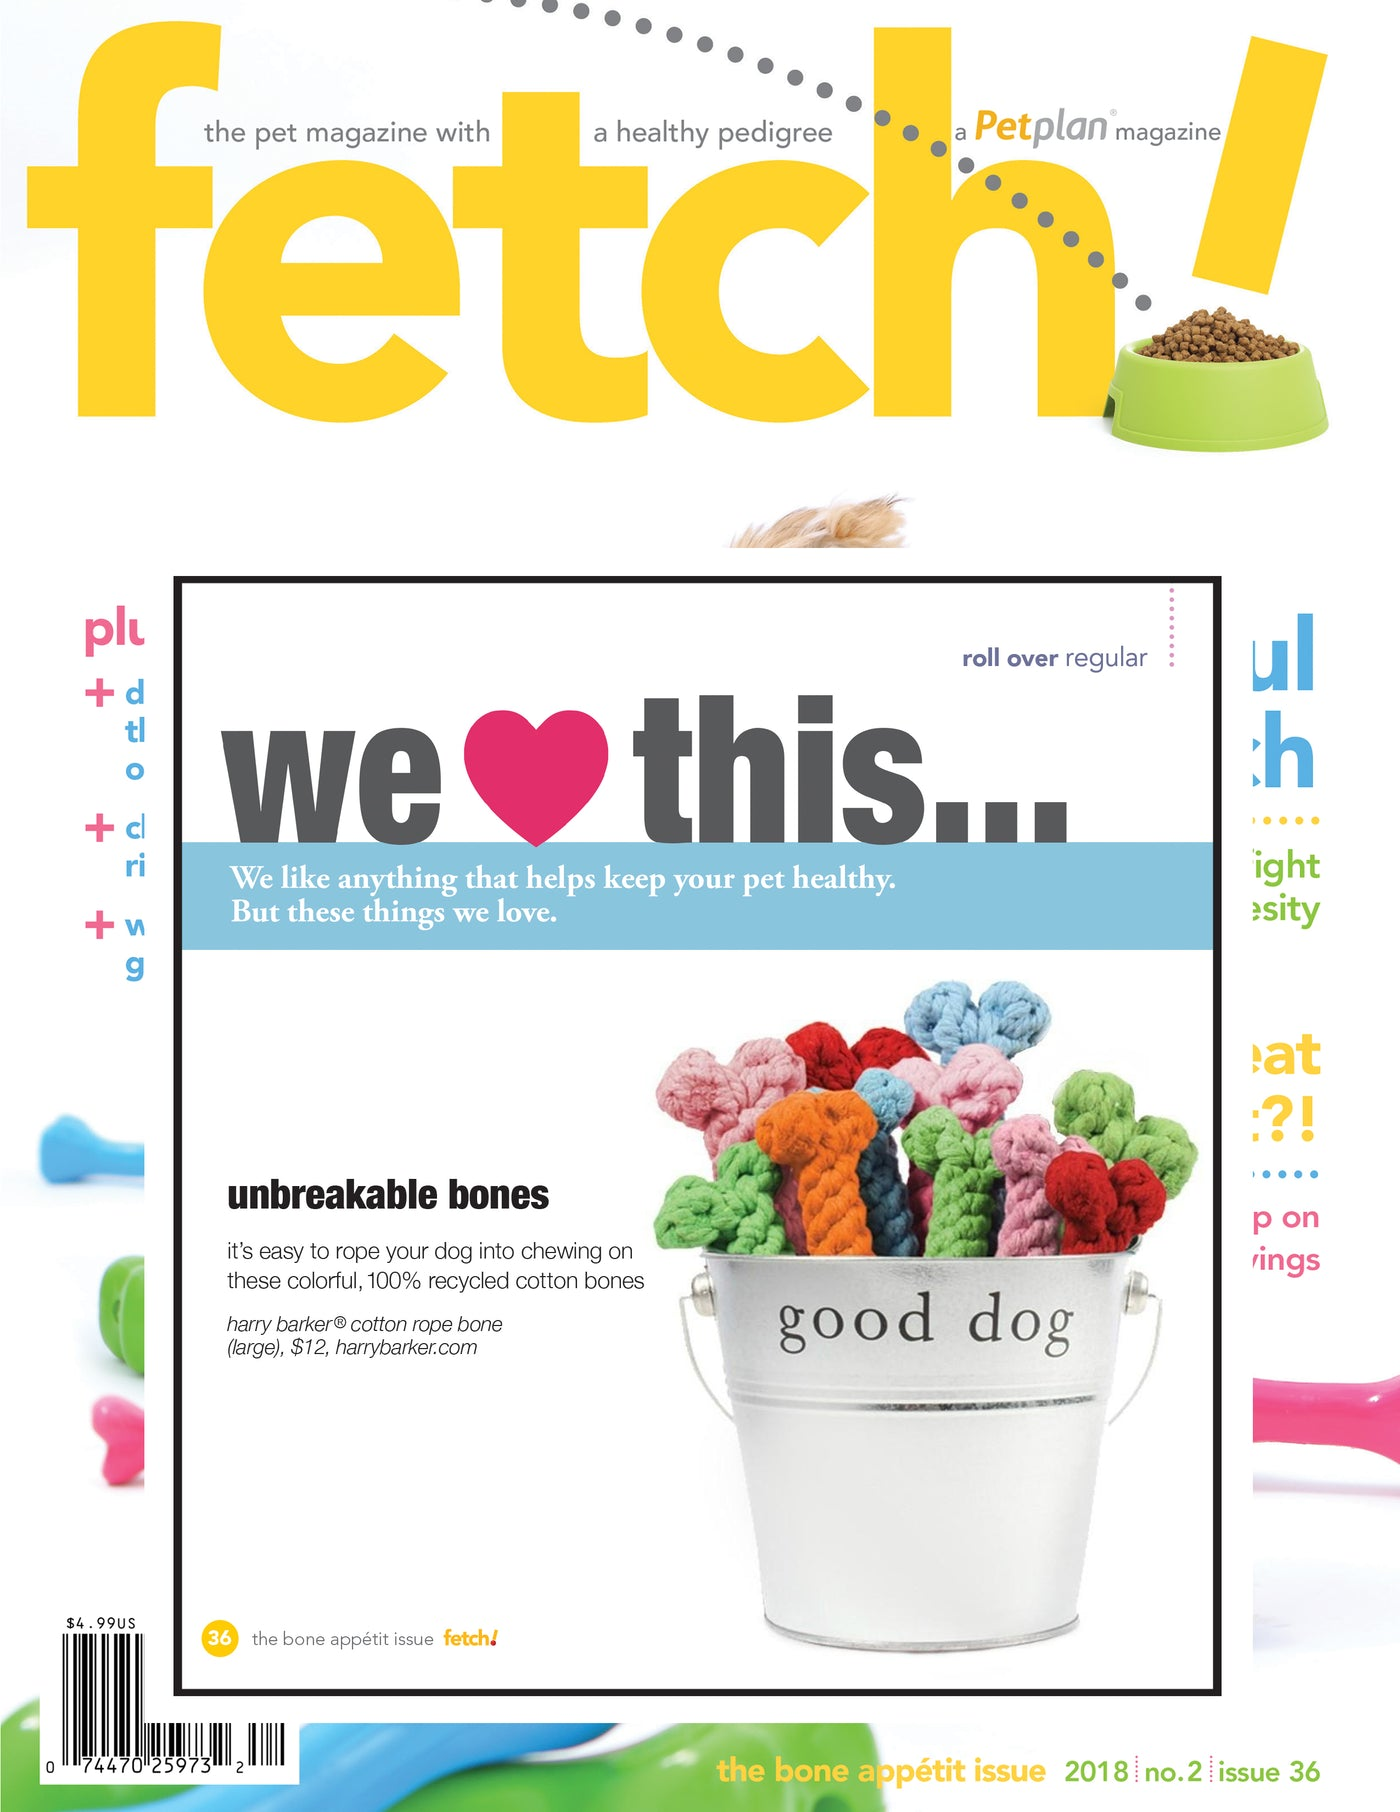 Fetch 2018 No. 2 Issue 36